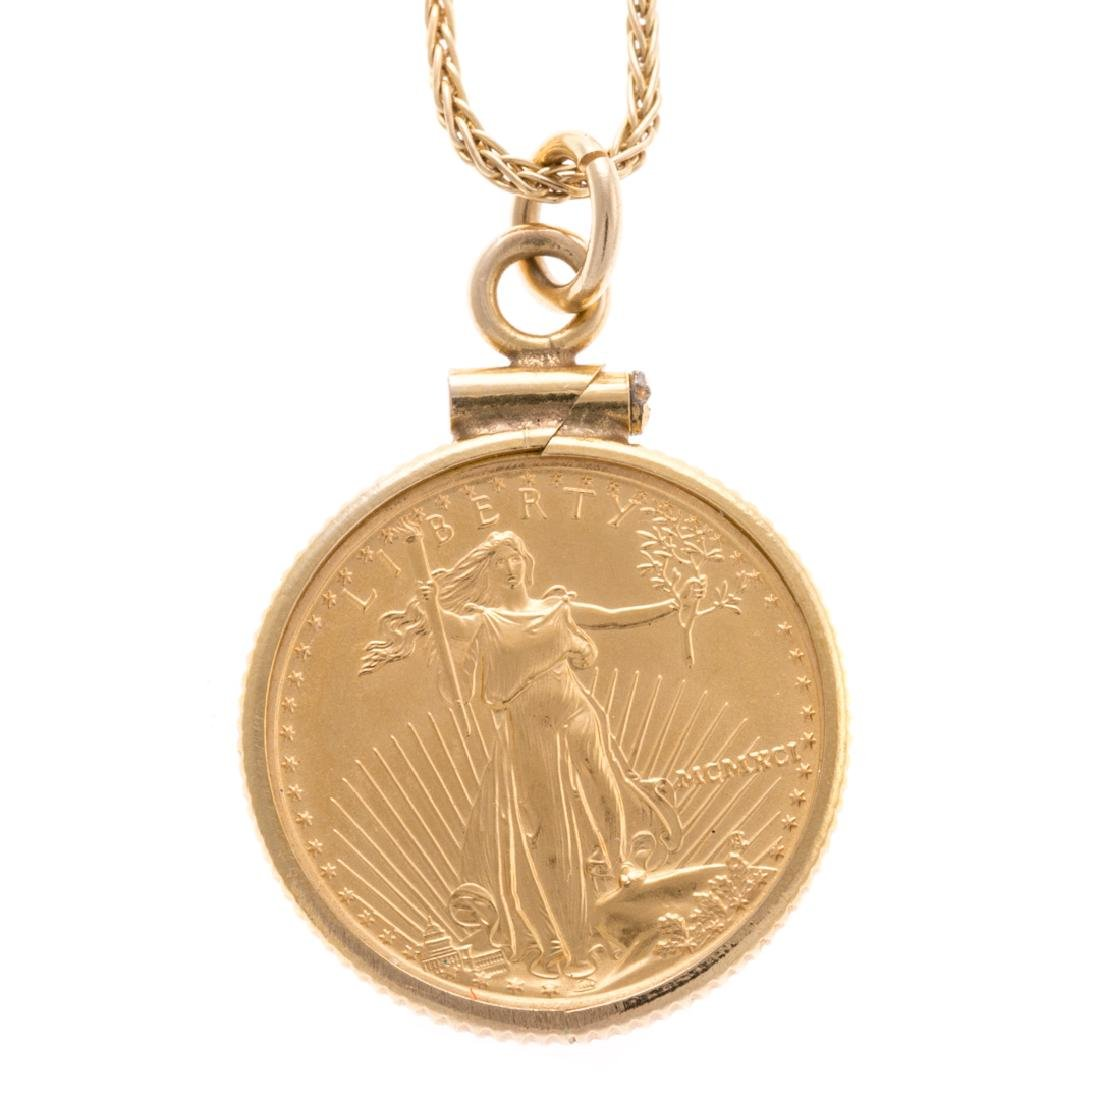 A Lady's 5 Dollar Gold Coin Pendant & Chain